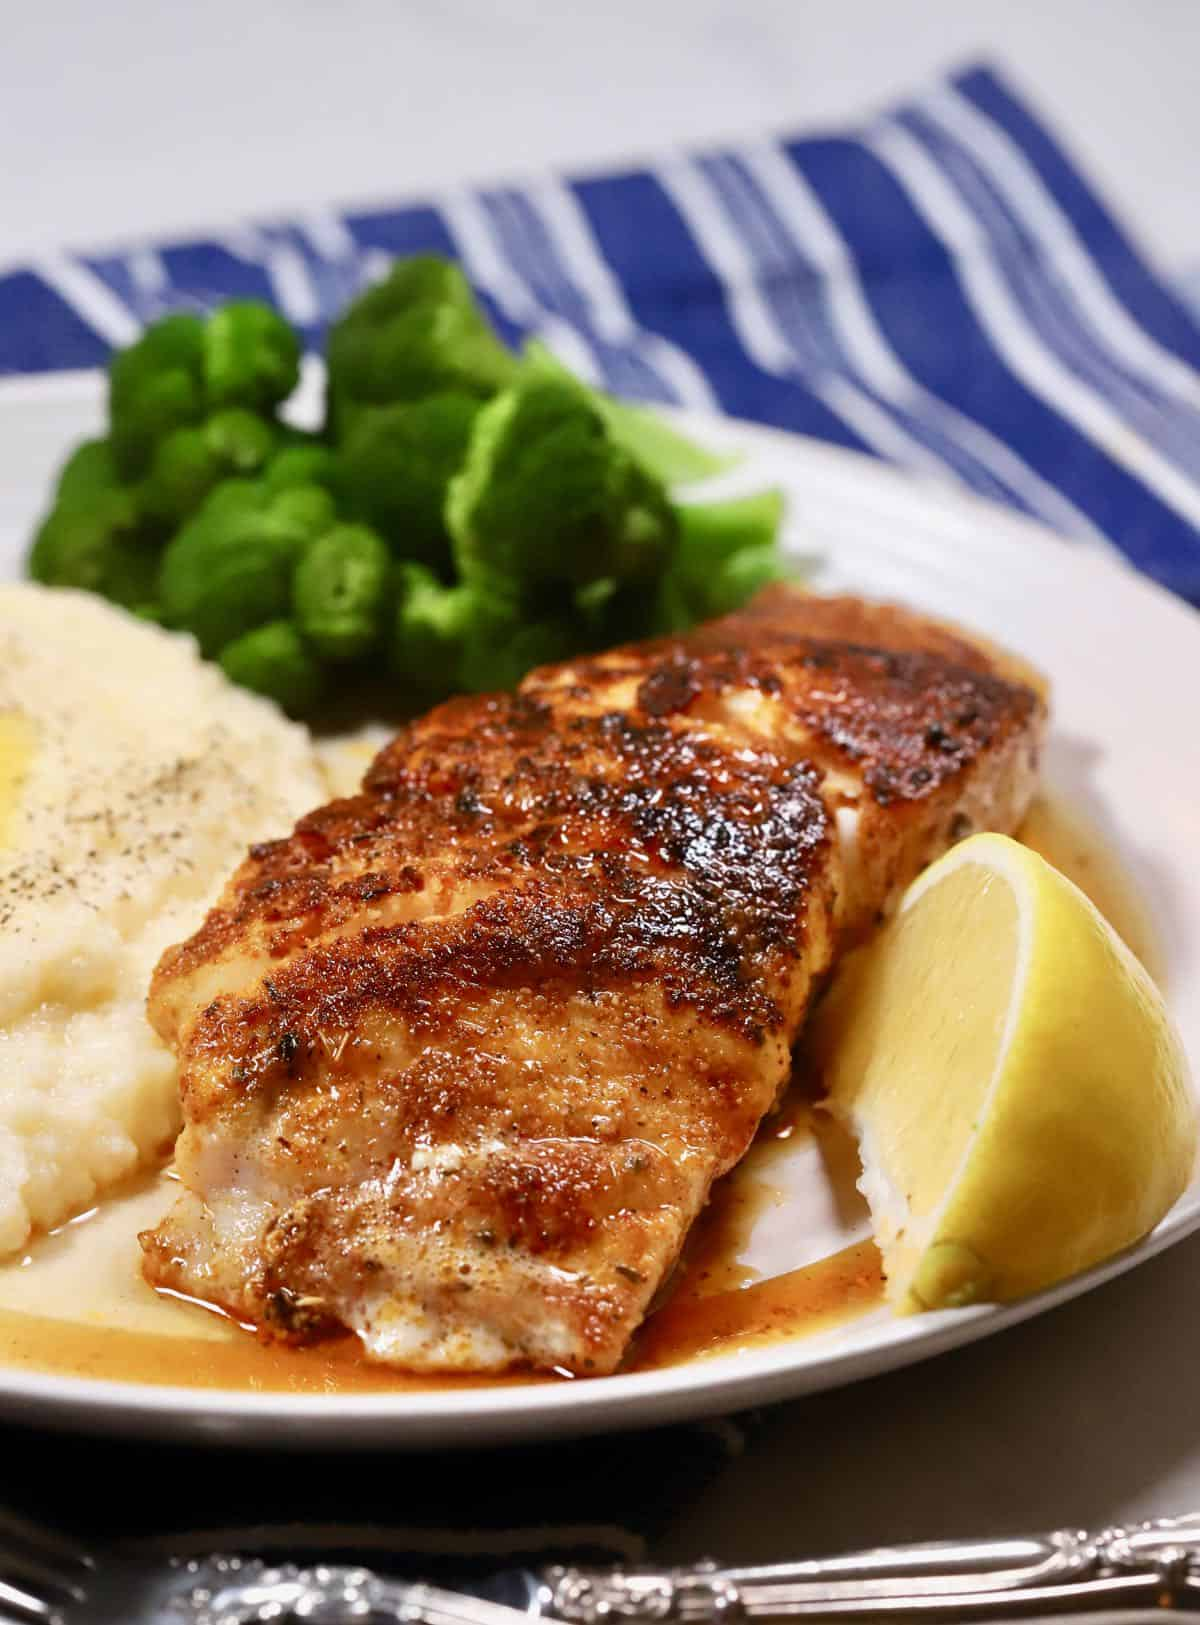 Blackened grouper on a white plate with grits.